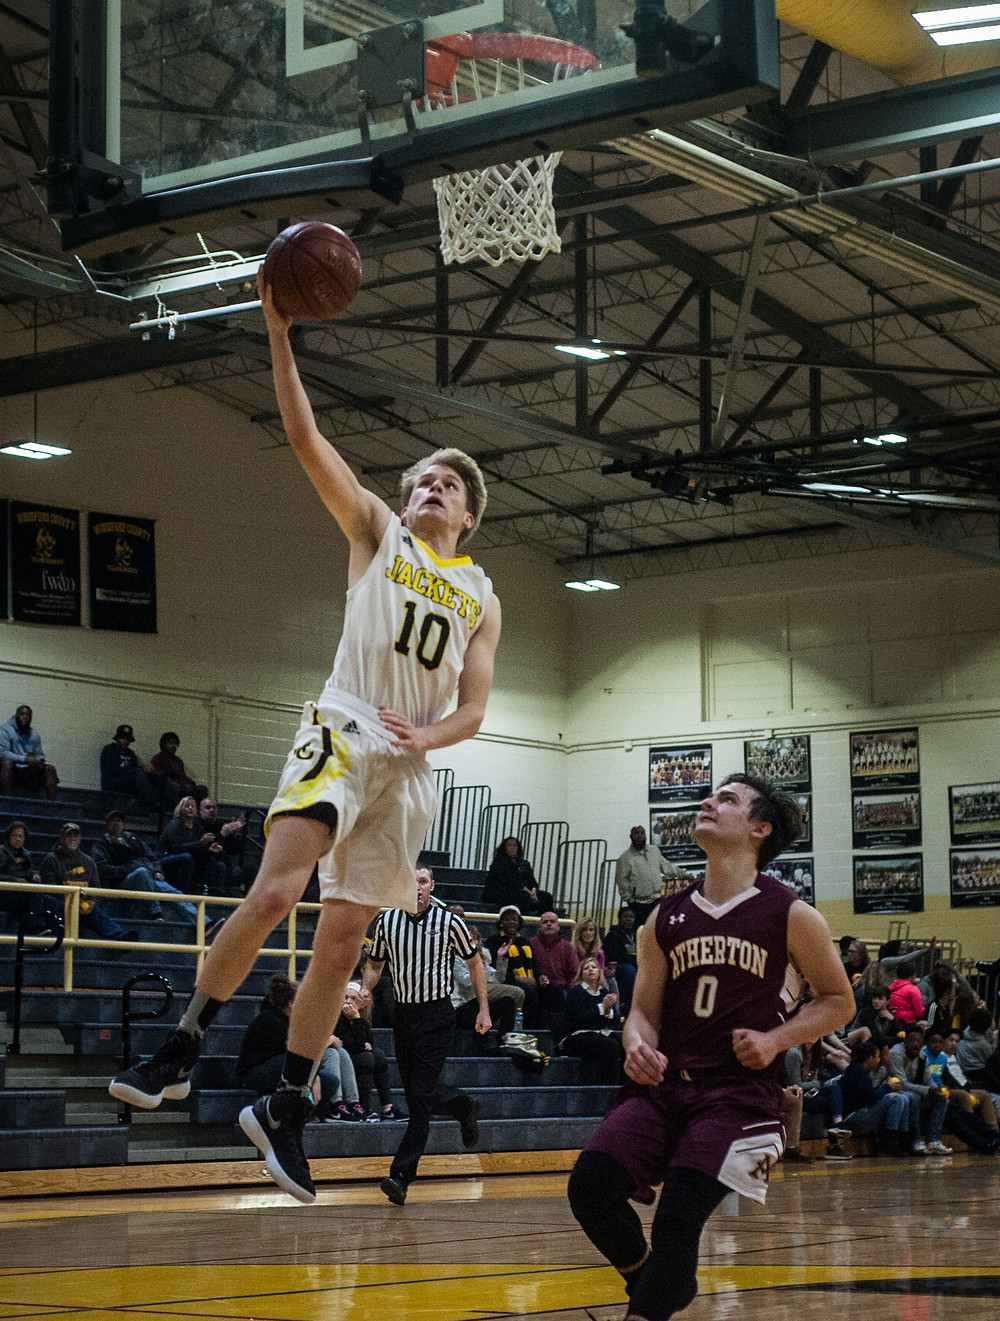 WCHS JUNIOR RYAN DUKE scores a layup in the  Jackets win over Atherton on Tuesday, Dec. 19. (Photo by Bill Caine)